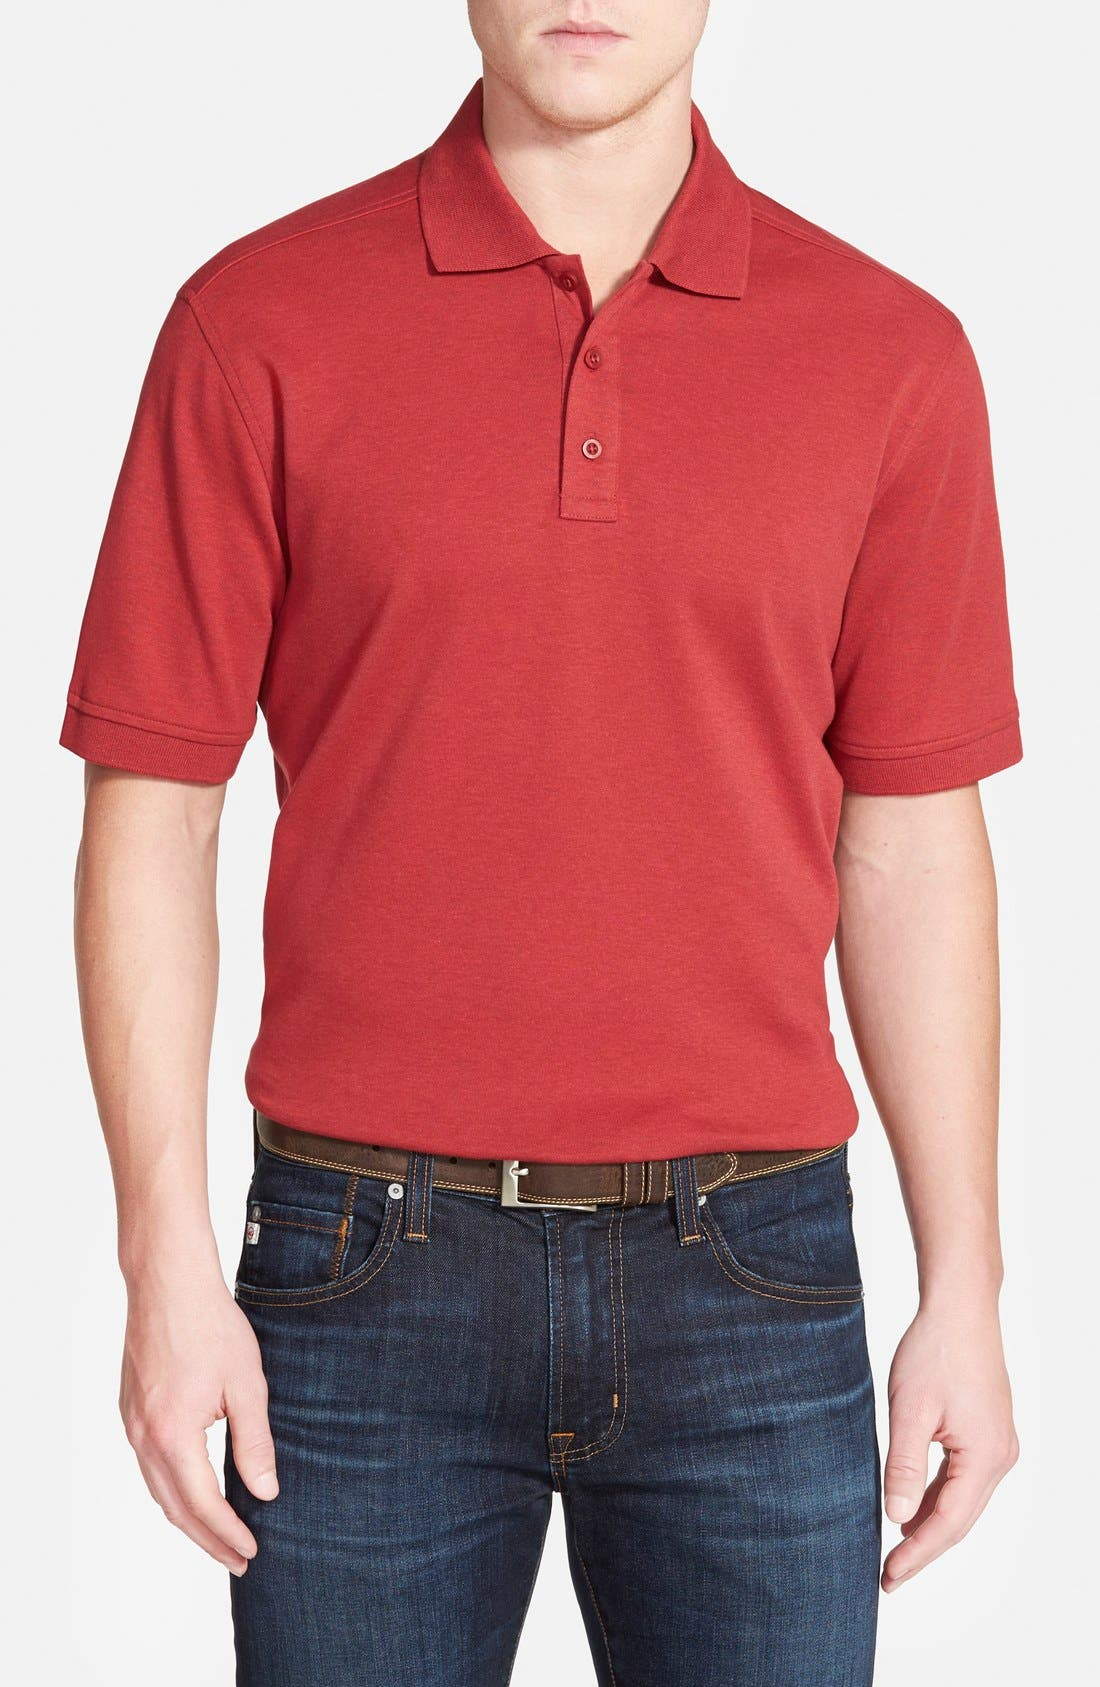 Main Image - Nordstrom Men's Shop Regular Fit Interlock Knit Polo